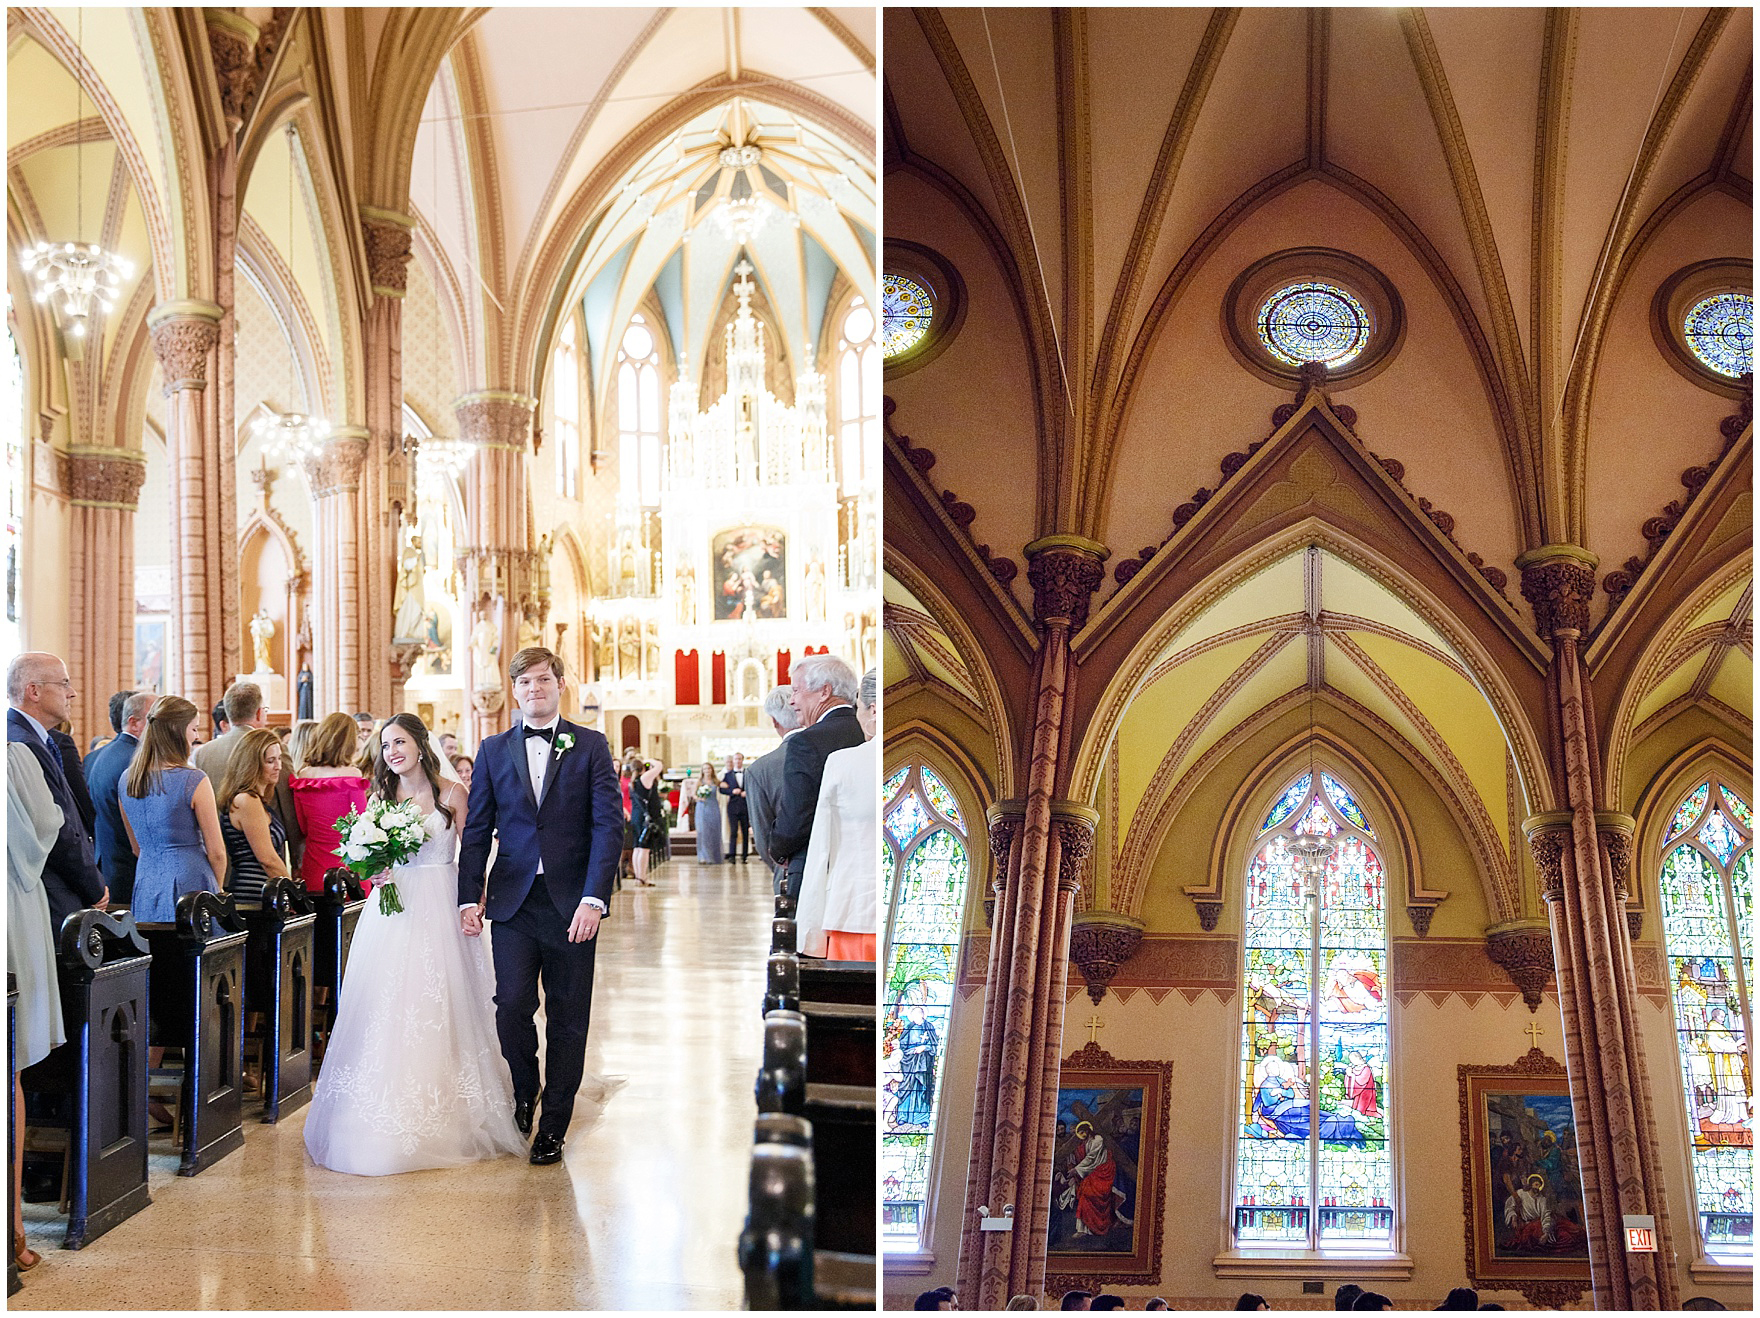 The bride and groom smile during the recessional at Chicago's historic Holy Family Church, site of the ceremony for a Butterfield Country Club wedding.